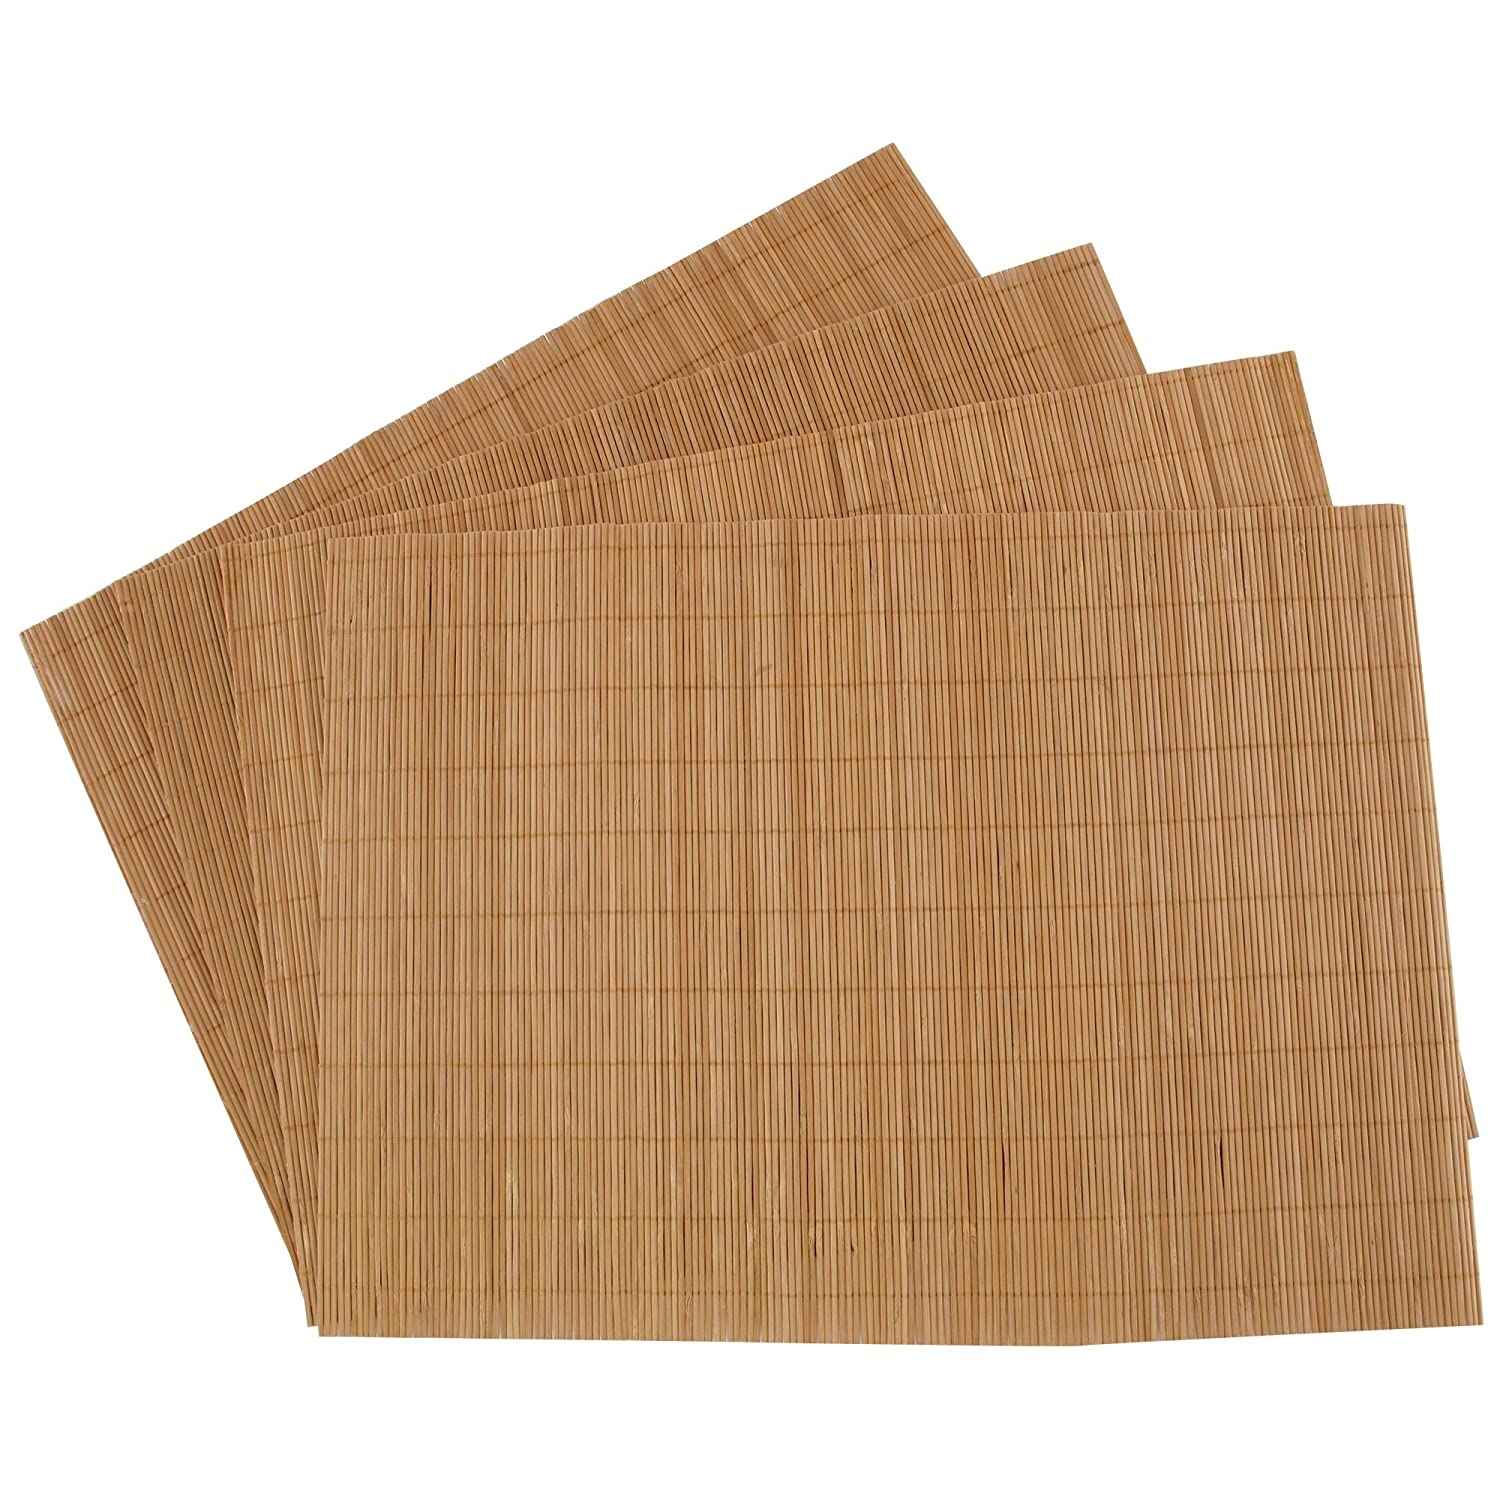 Paper Bamboo Placemats Bamboo Placemat/sushi